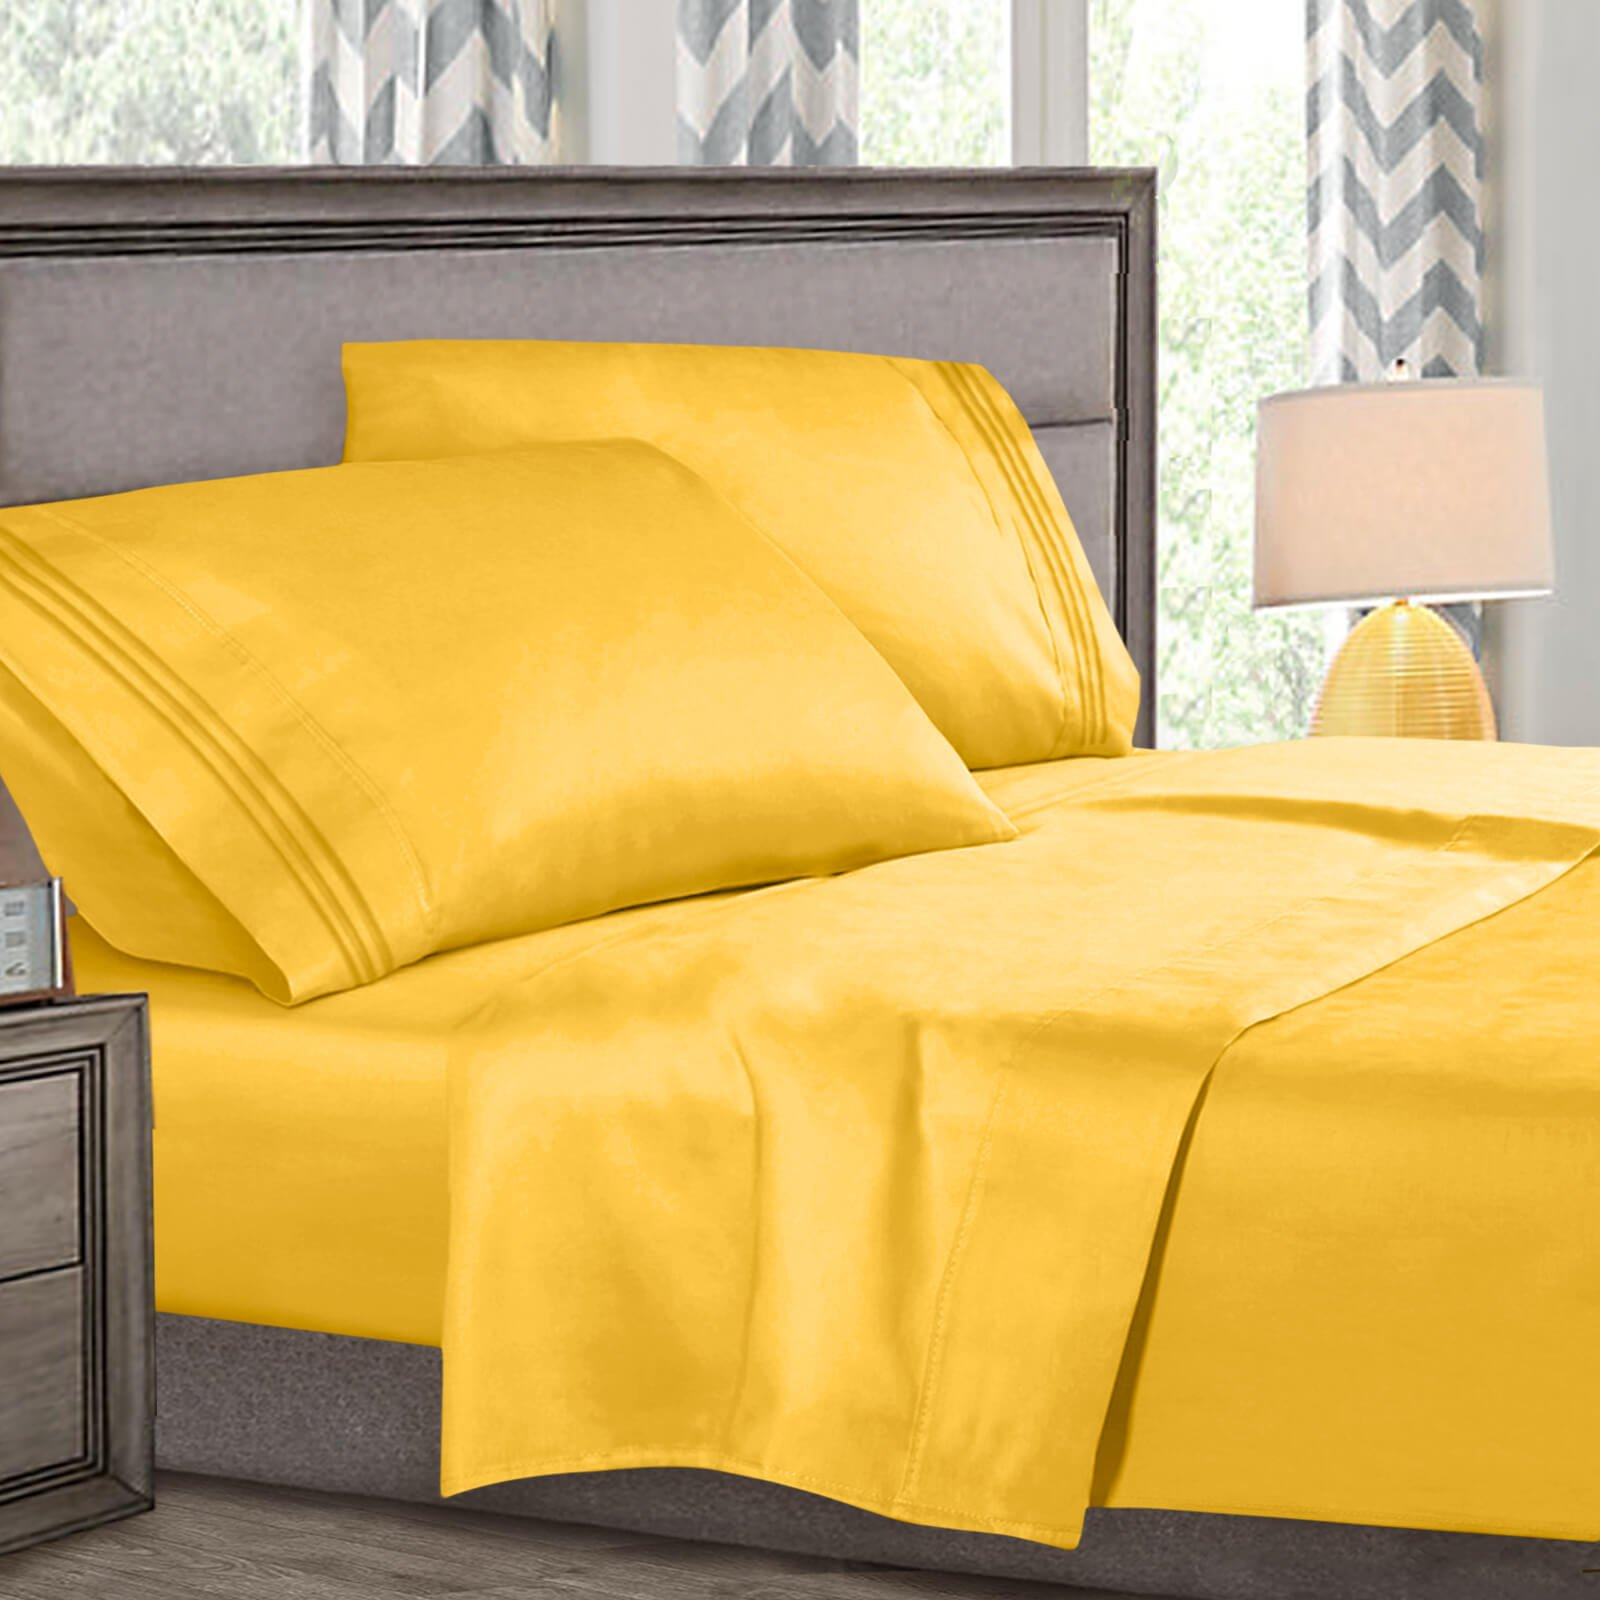 Full Xl Size Bed Sheets Set Yellow, Highest Quality Bedding